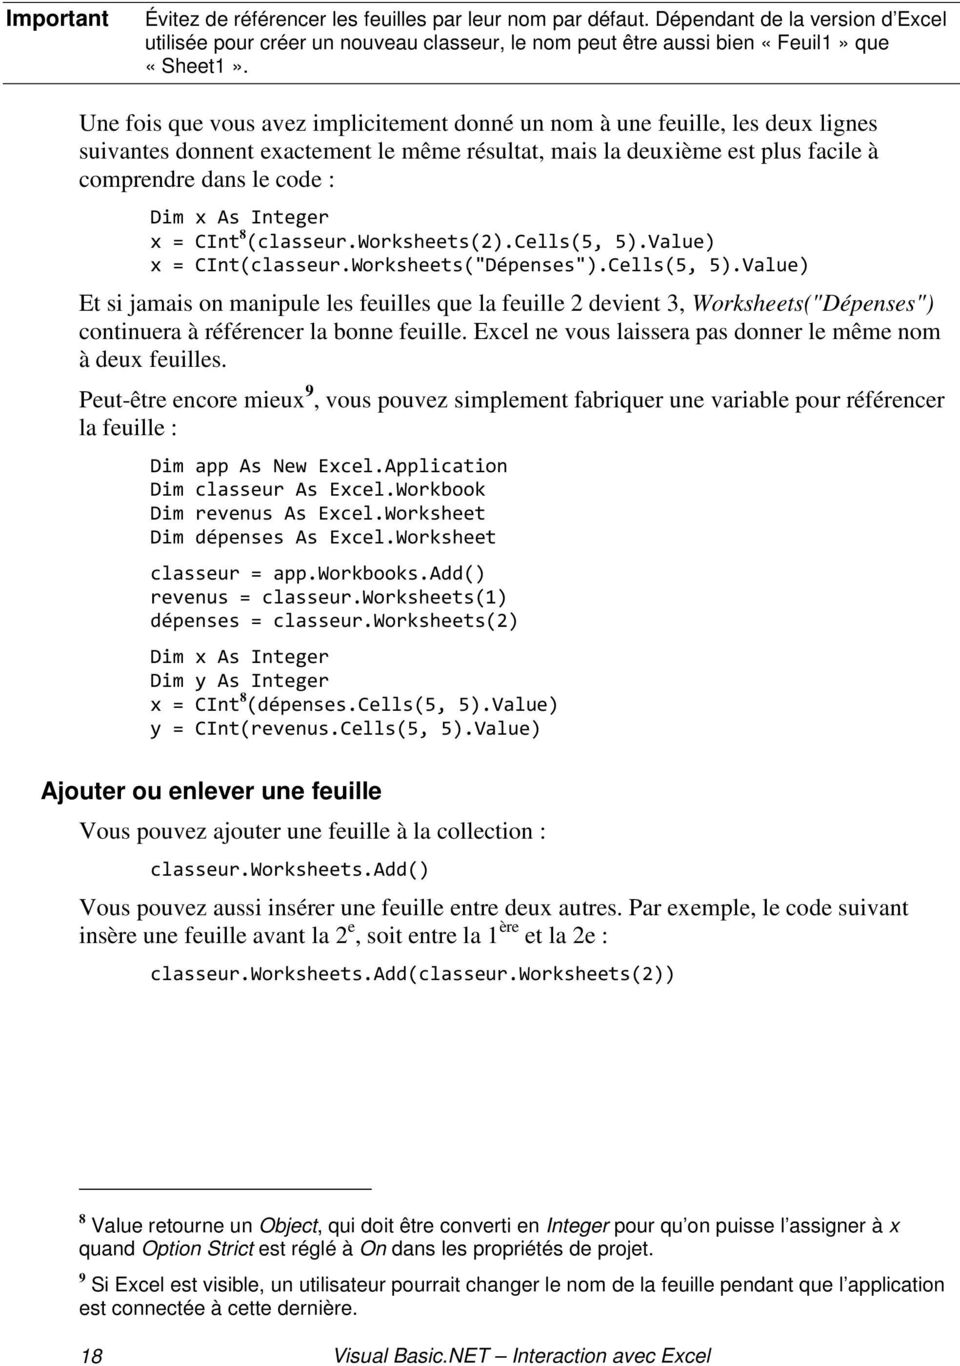 "Integer x = CInt 8 (classeur.worksheets(2).cells(5, 5).Value) x = CInt(classeur.Worksheets(""Dépenses"").Cells(5, 5)."